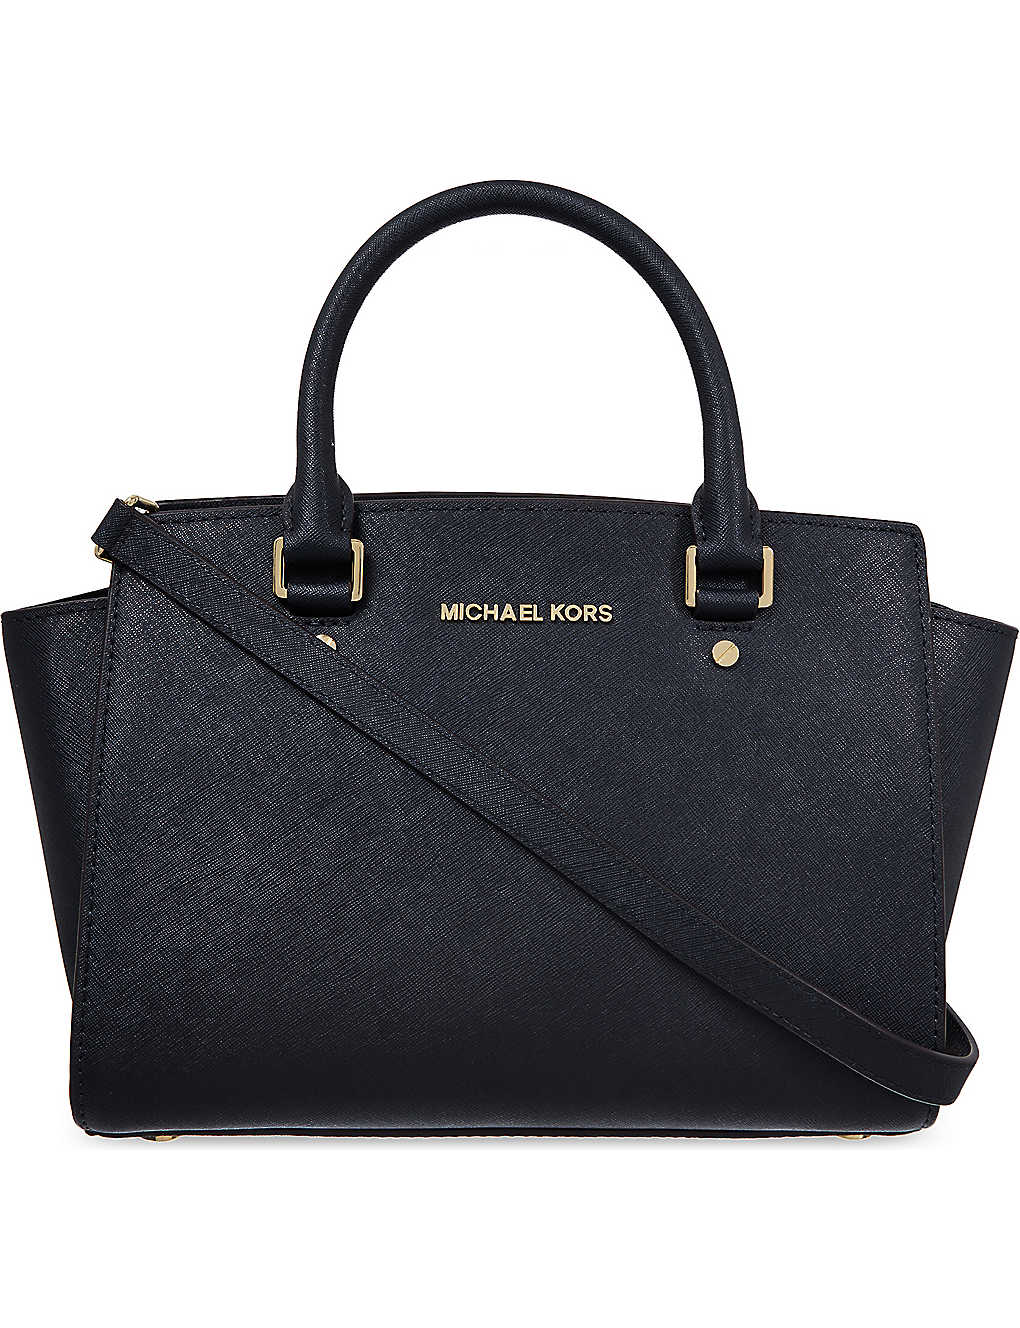 73e2c6056f83 MICHAEL MICHAEL KORS - Selma medium Saffiano leather satchel ...